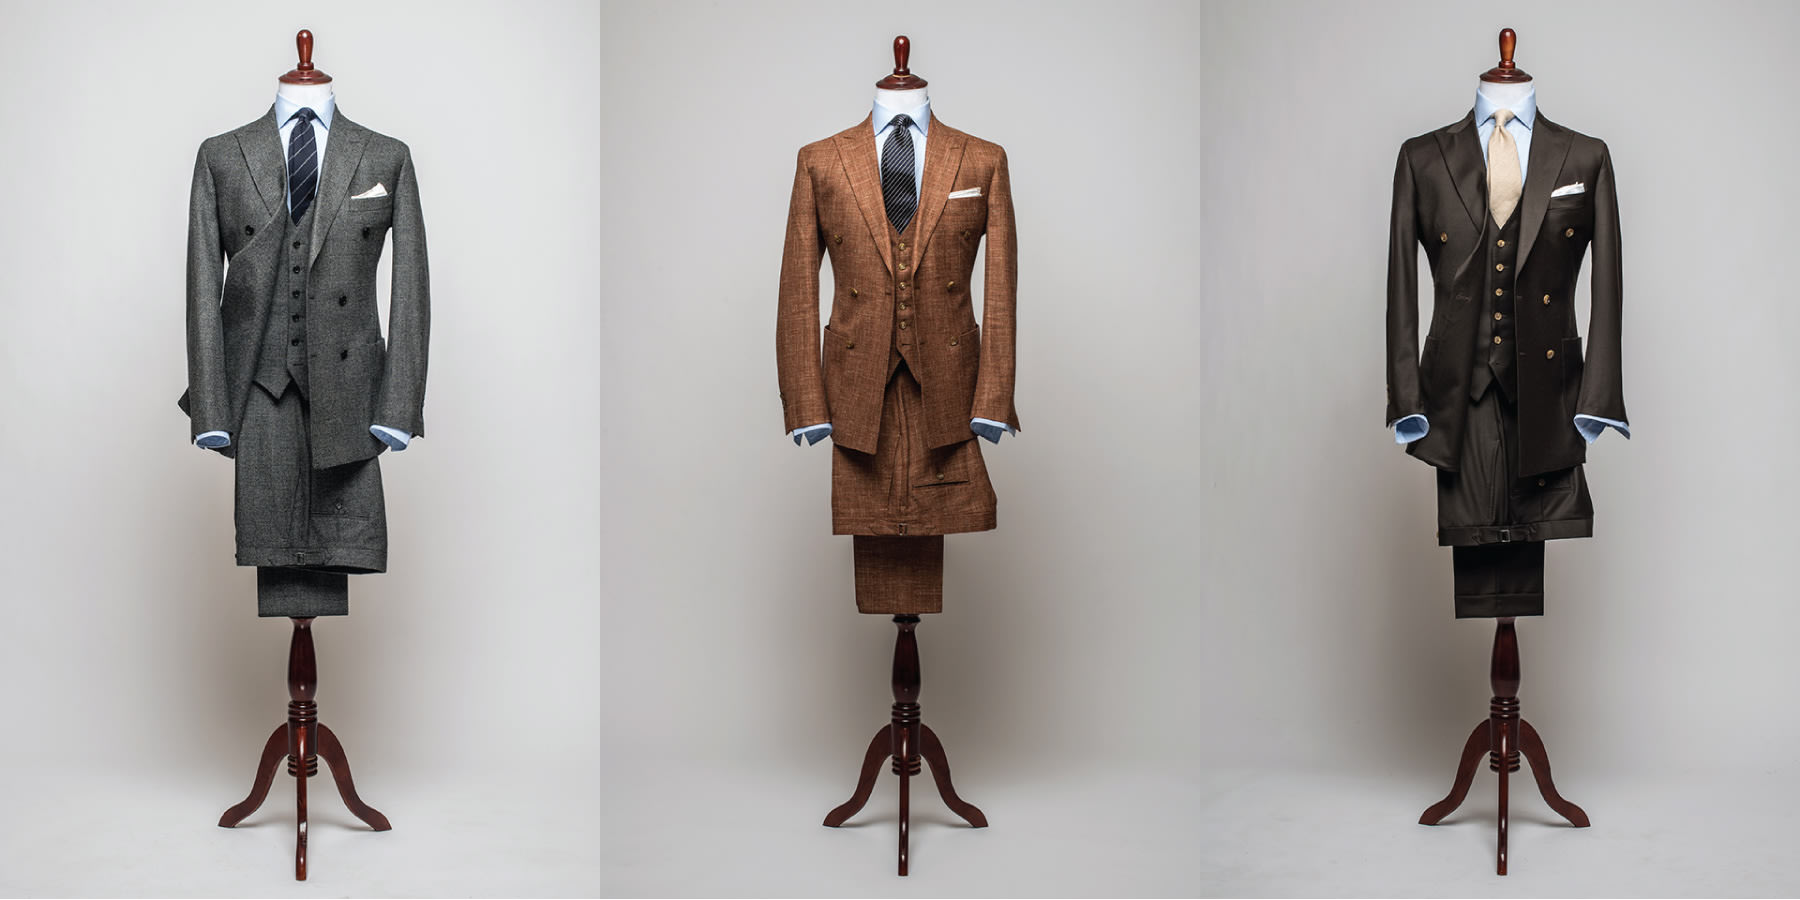 Waistcoat với double breasted suit